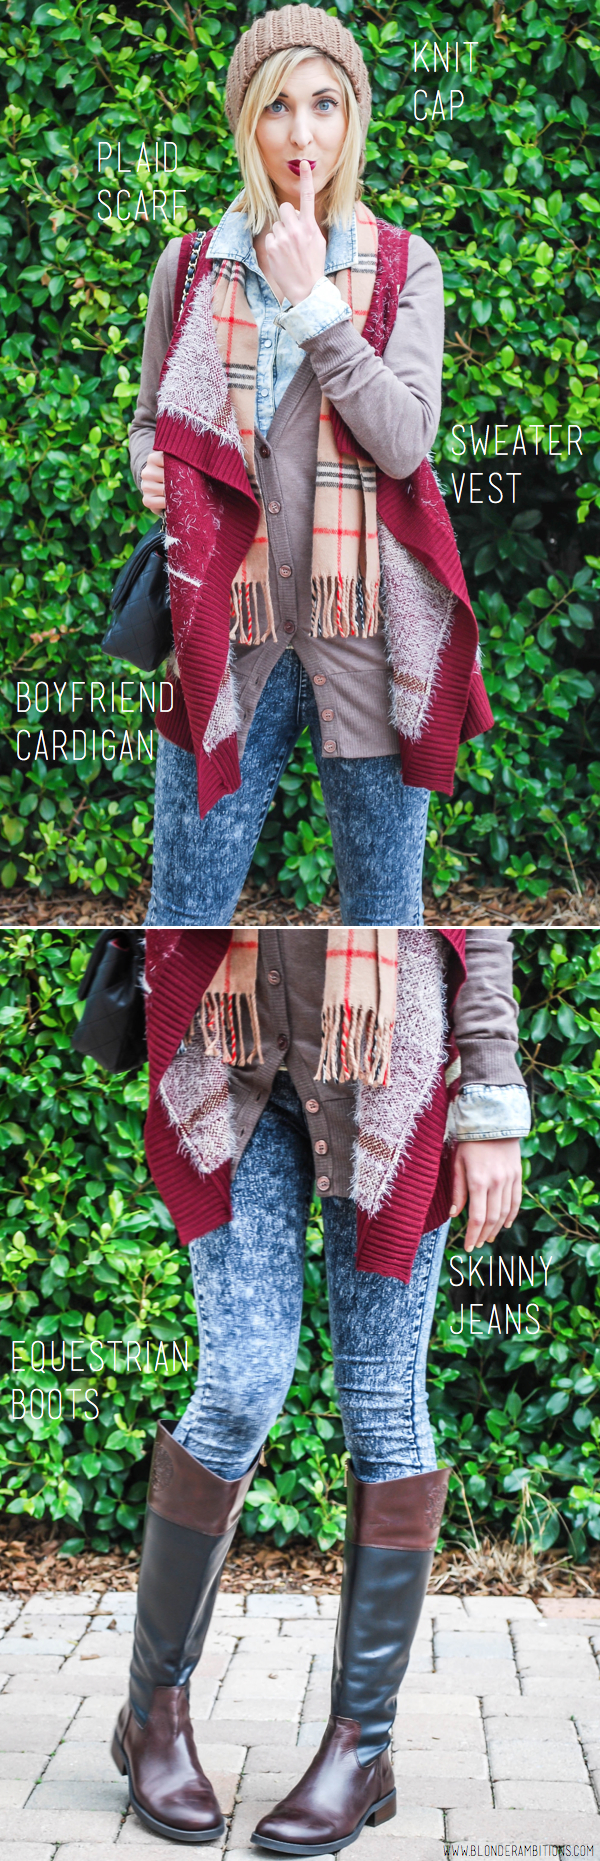 vested cardigan 2